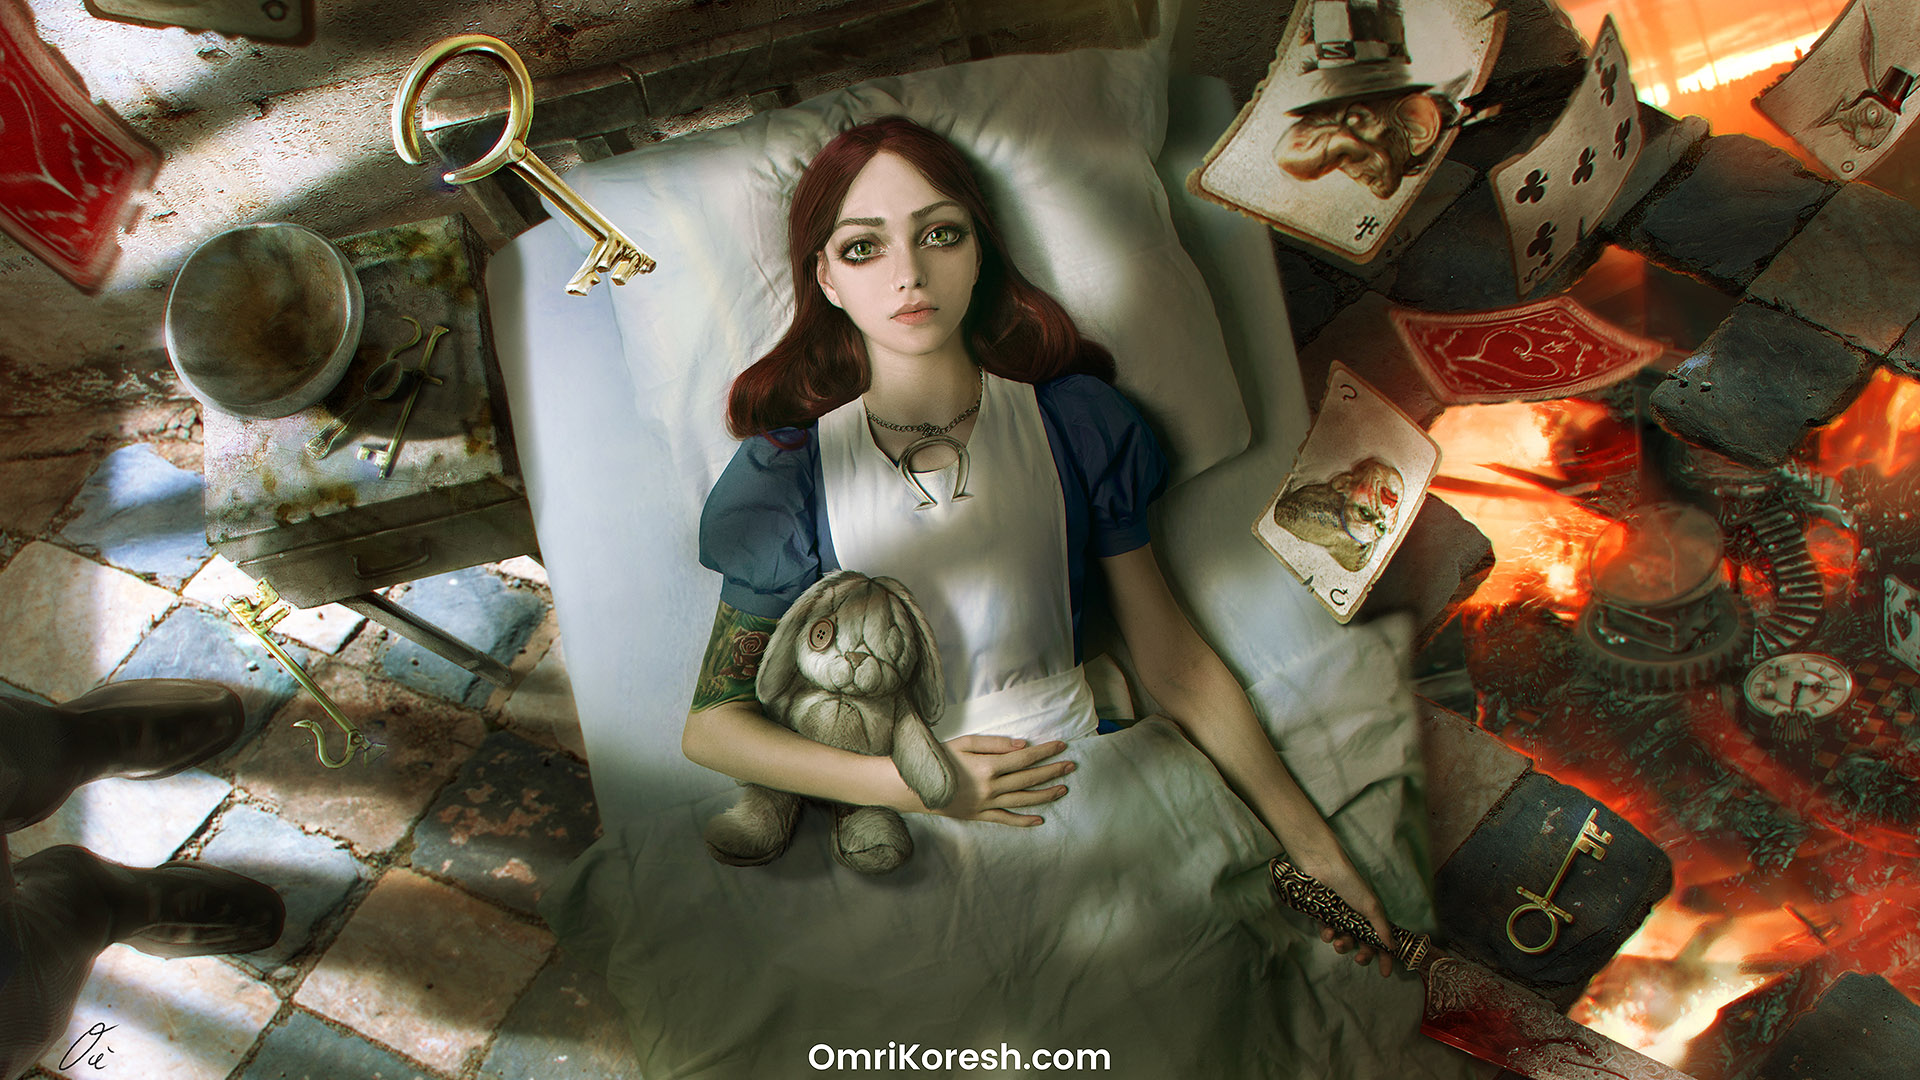 alice 3 pitch. Wake Up Alice, Wake Up!, omri koresh, alice madness returns, ea games, wallpaper, hatter, cheshire, cat, alice, american mcgee, cards, keys, bumby, creepy, doll, dark wonderland, wonderland, alice in wonderland, alice in underland